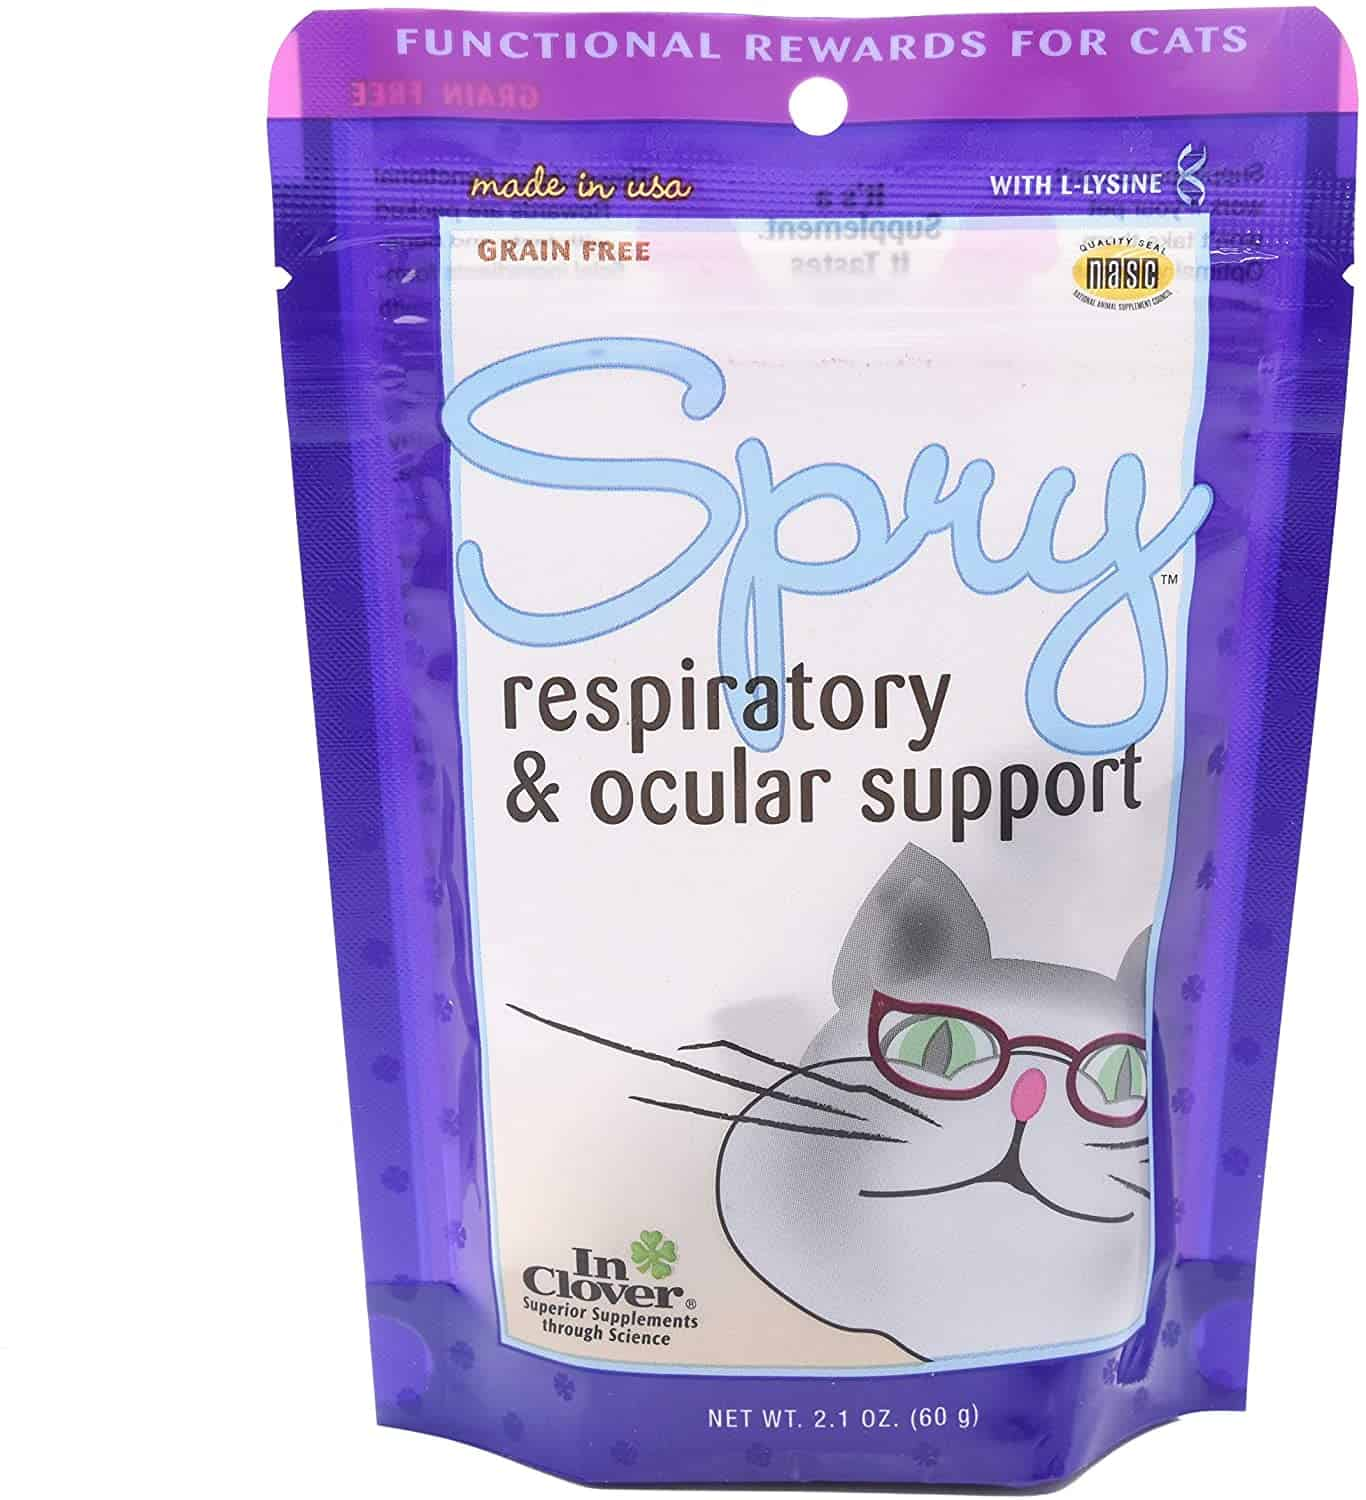 Lysine for Cats - Where to Buy Lysine Powder and Treats? 5